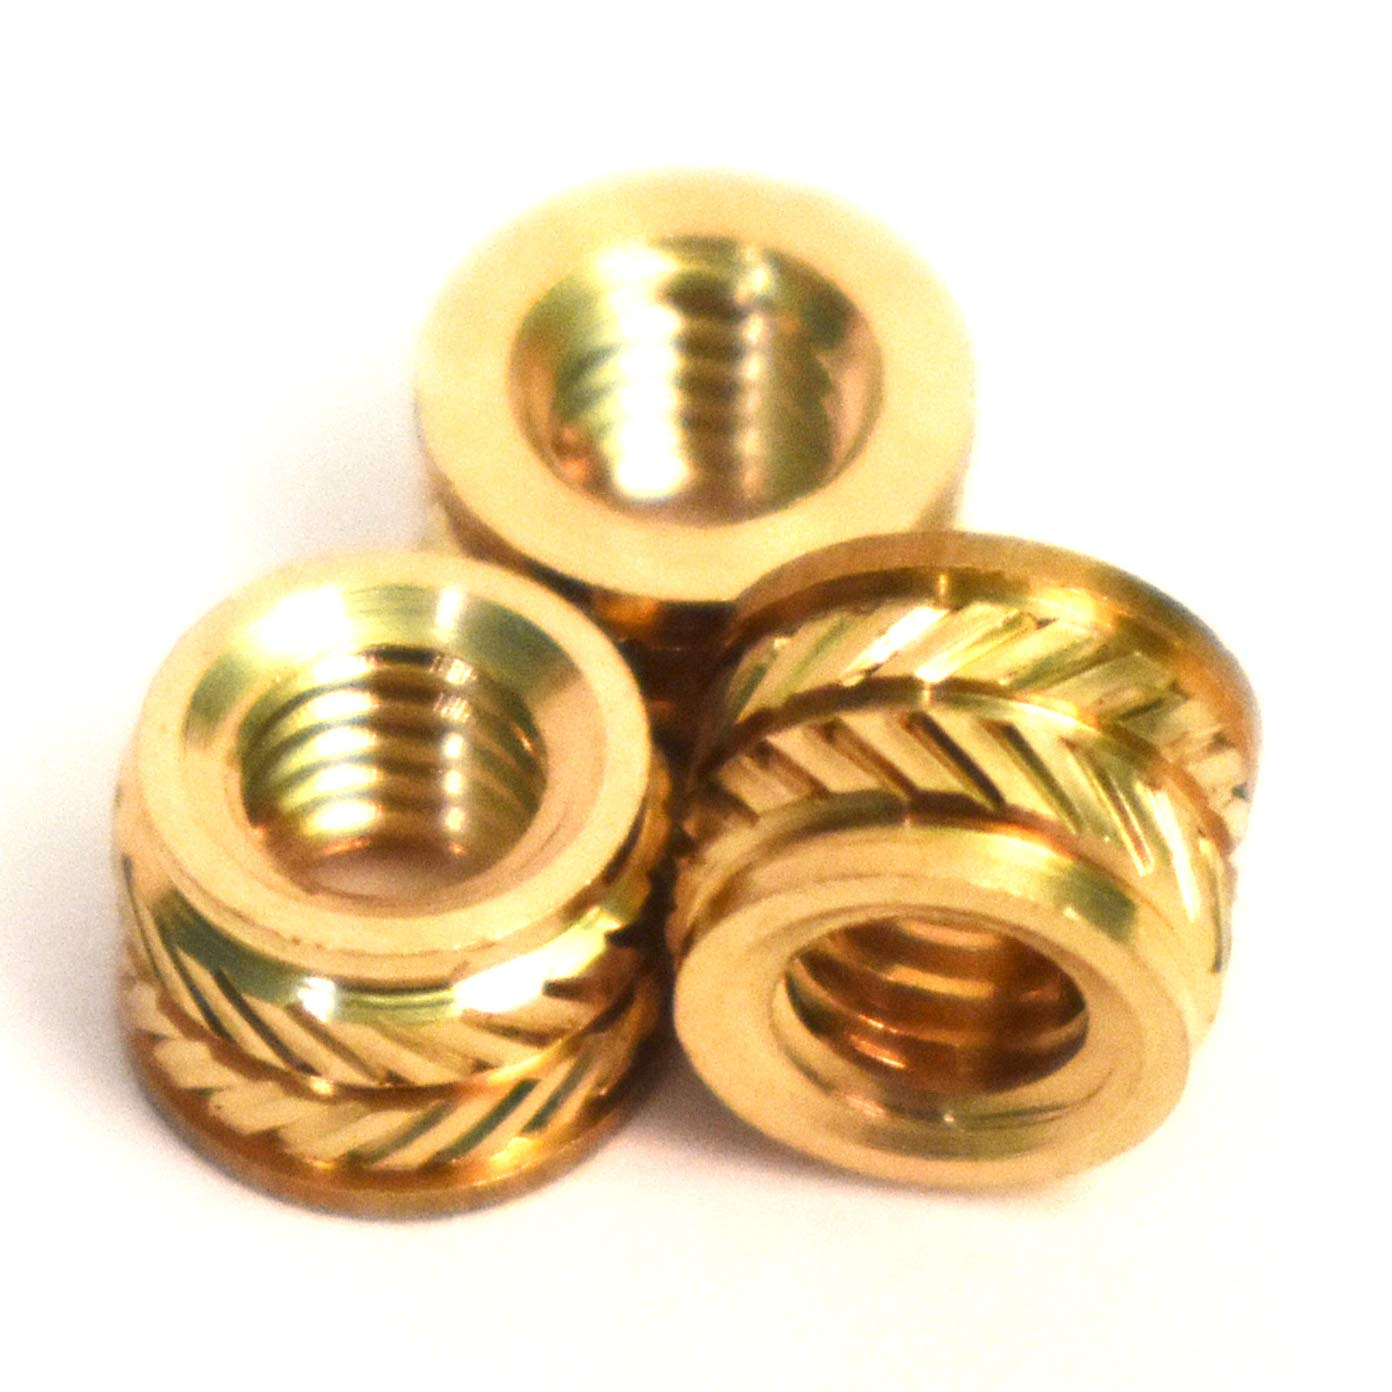 Press Fitting or Heat Sink or Injection Molding Type M4 Brass Insert 50pcs,6.5mm OD 50 pcs 4.7 mm Length J/&J Products Female M4 Thread